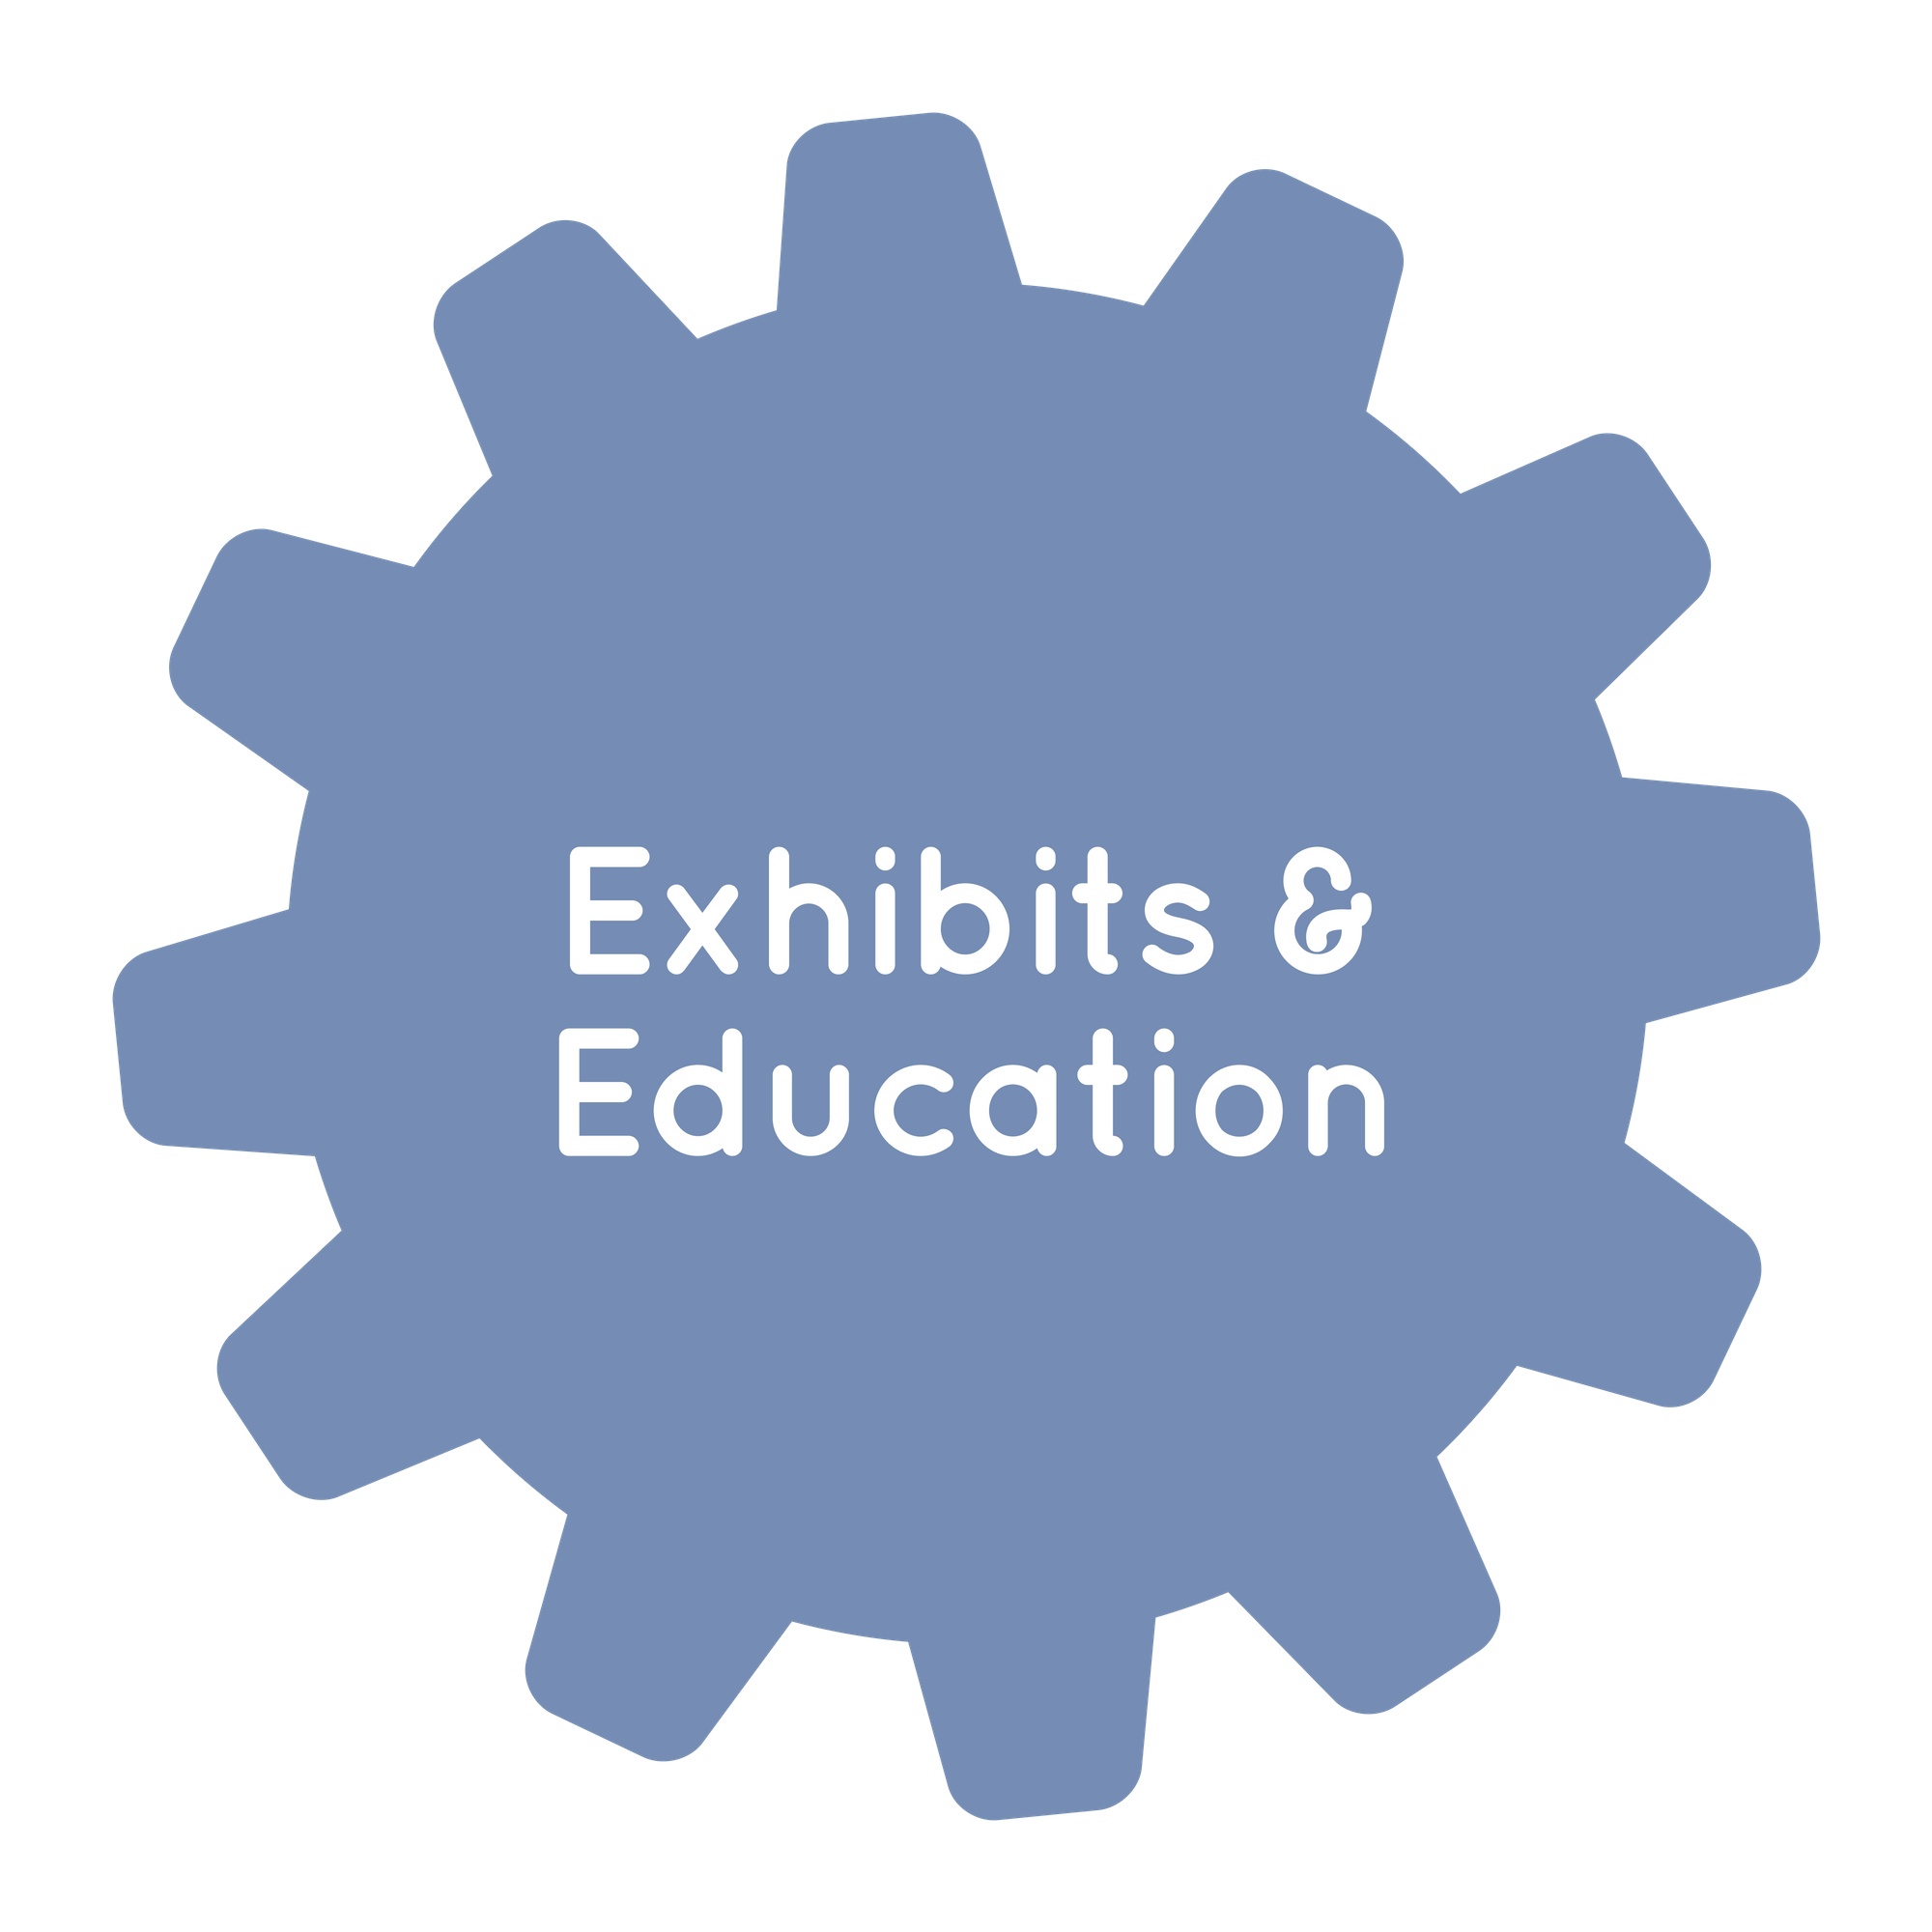 Exhibits/Education office of Children's Museum of Atlanta